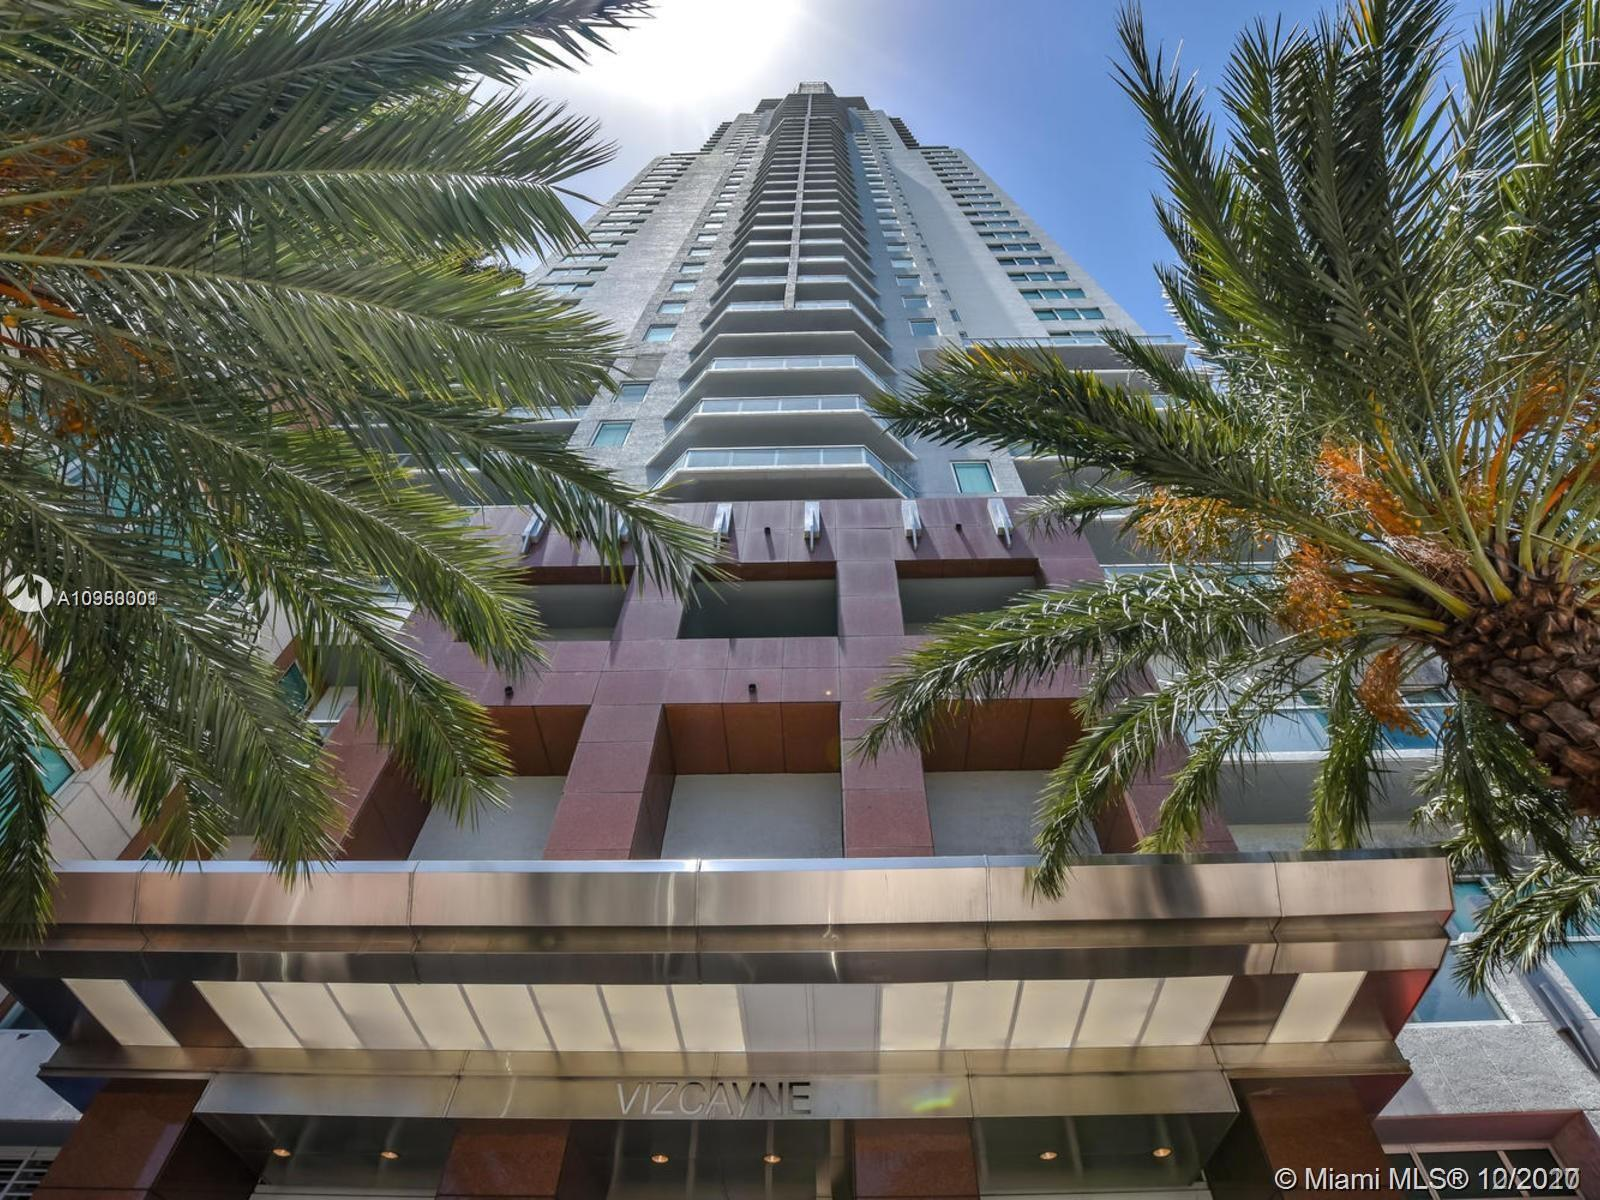 Remodeled unit with modern kitchen w/italian cabinets, granite countertops, stainless steel appliances, ceramic floors throughout. Amazing downtown & bay views. 5-star huge amenity deck on the 8th floor with 4 pools, grill area, fitness center, yoga, full service spa, business center, billiard room, conference room, club house and more!! Tenant occupied. Great location in the heart of downtown Miami across of Bayfront Park. Walking distance to American Airlines Arena, bayside, shopping and restaurants. Valet and security 24/7.